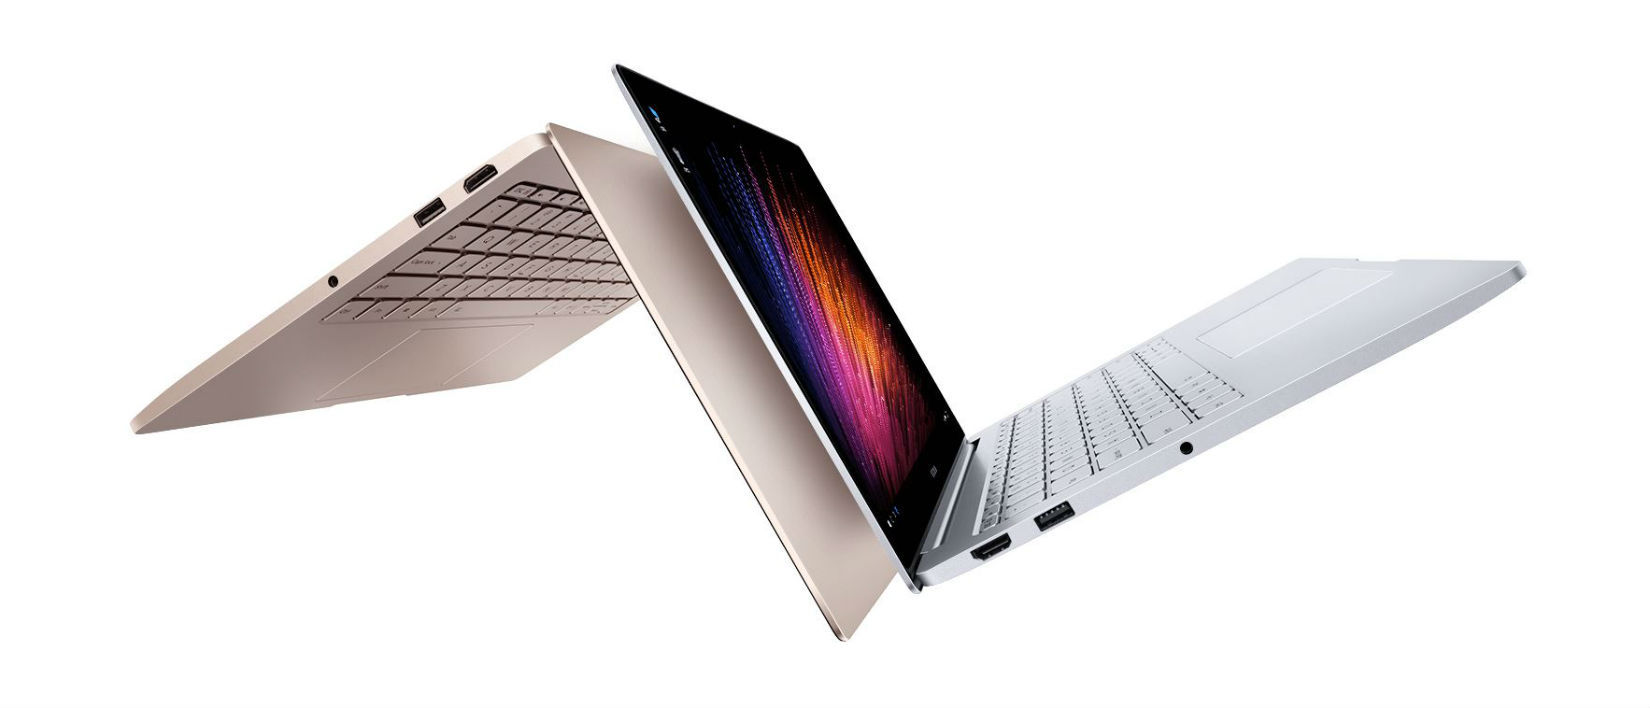 Le Xiaomi Notebook Air